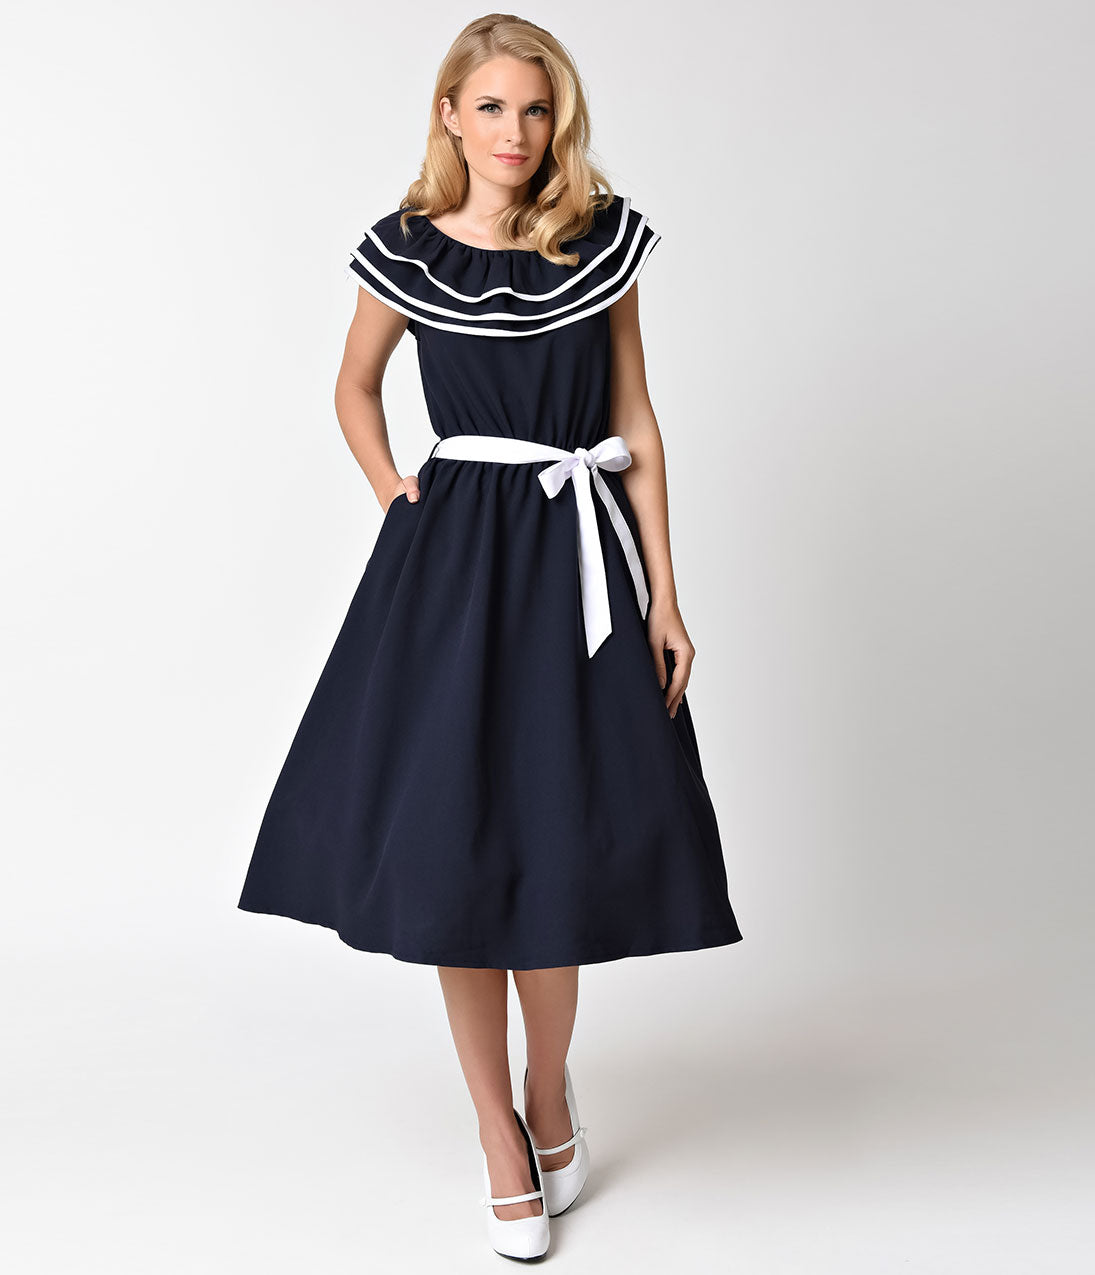 1940s Costume & Outfit Ideas – 16 Women's Looks Voodoo Vixen Navy Blue Nautical Ruffle Hope Swing Dress $39.00 AT vintagedancer.com